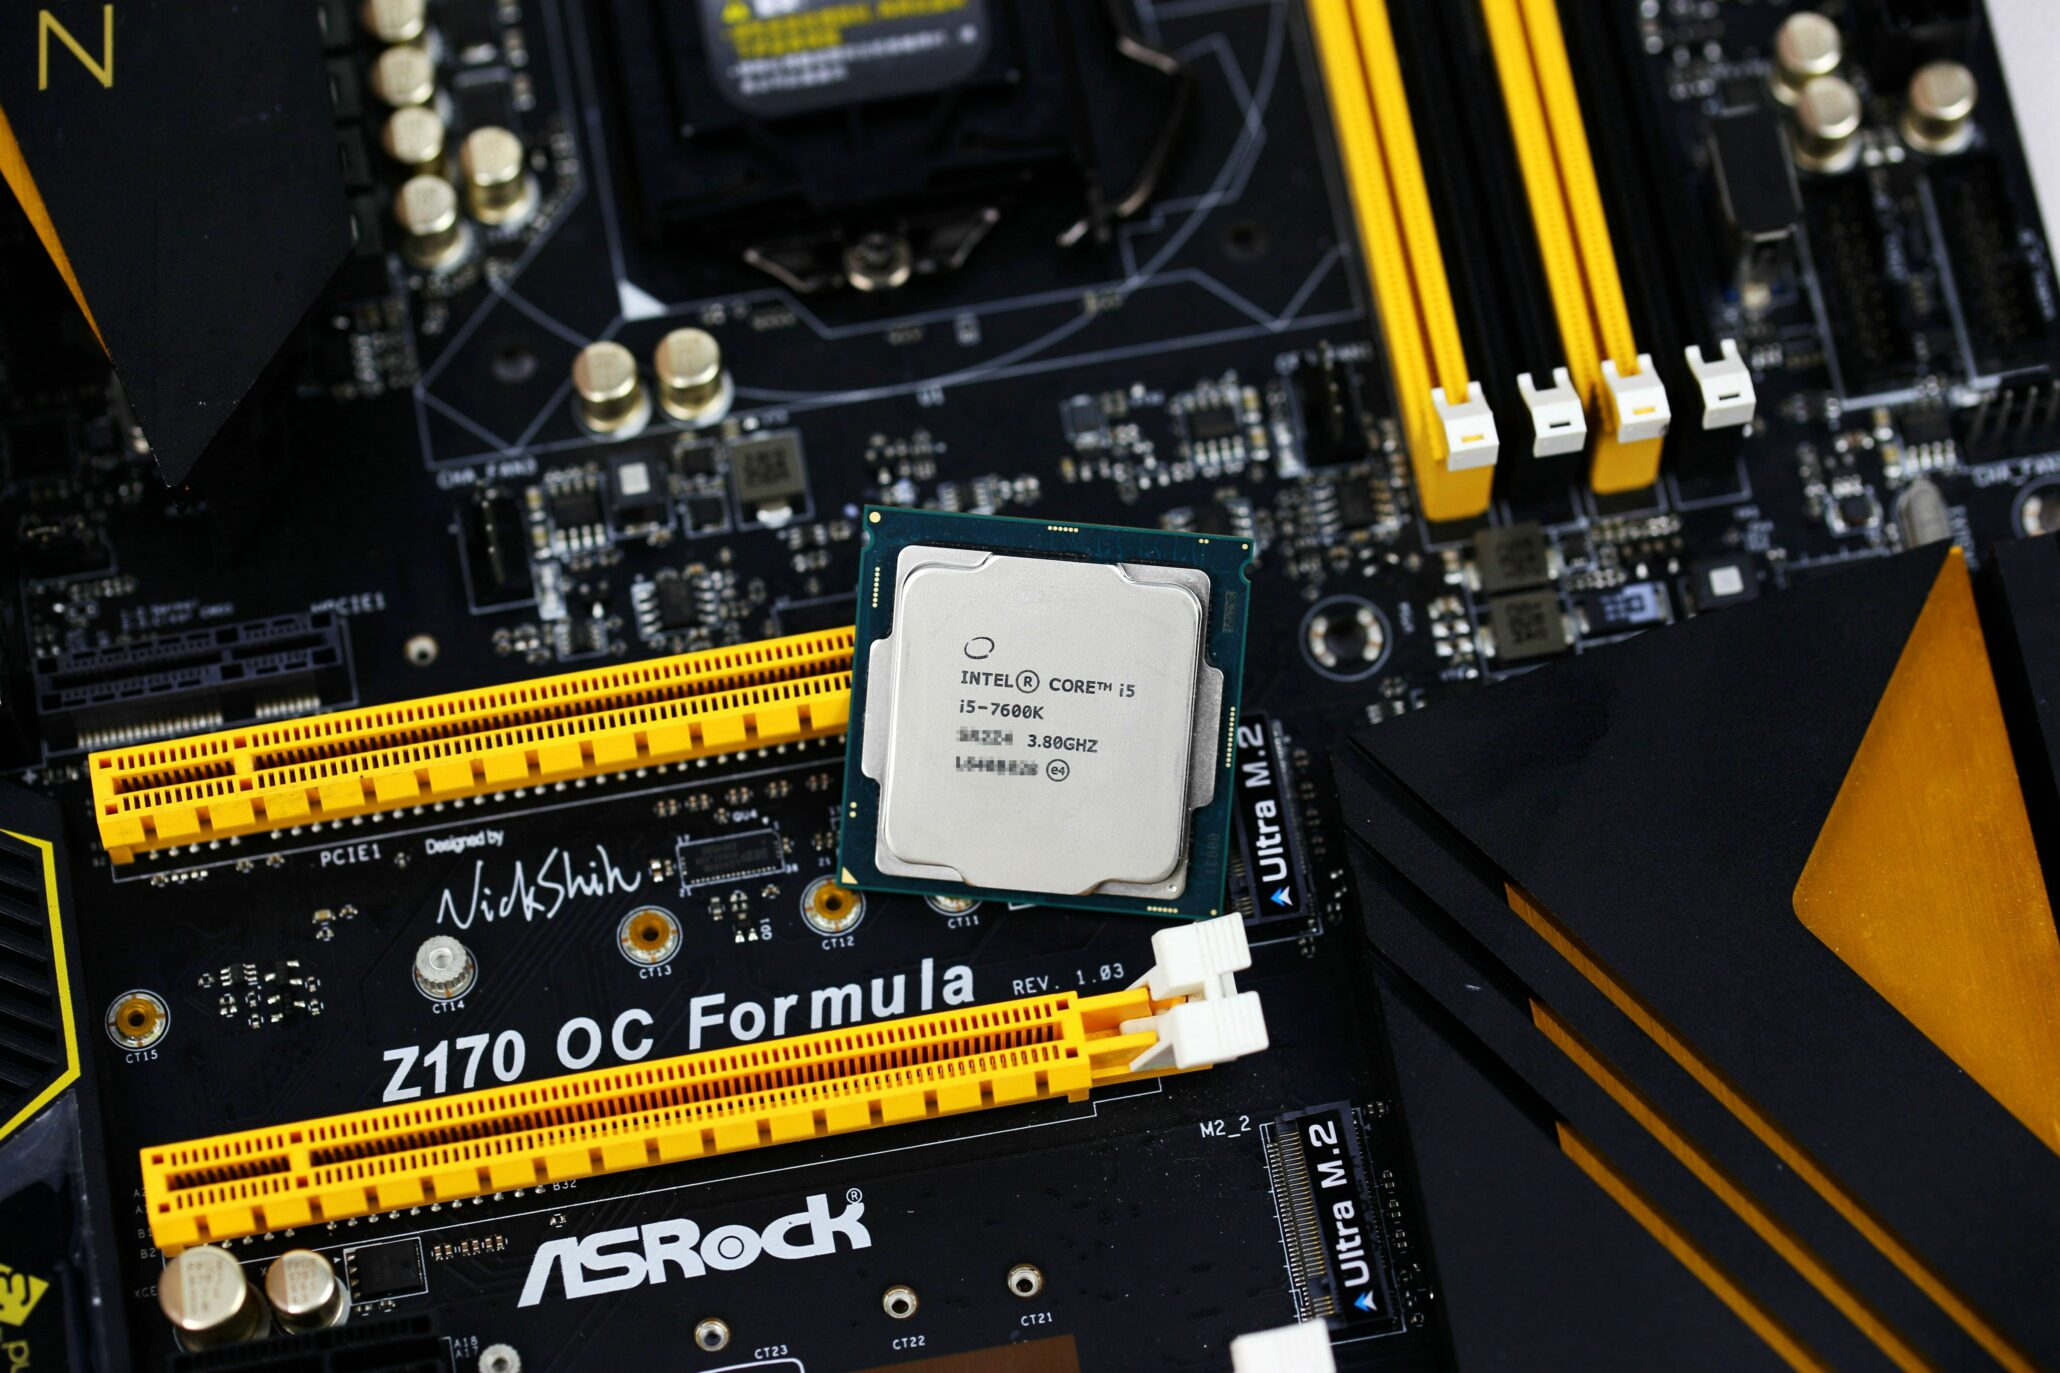 Intel Core I5 7600k Kaby Lake Cpu Benchmarked Against Skylake Circuitry For 7400 Test The Processor Is Yet To Launch Several Chinese Sites Have Already Acquired This Chip Testing New